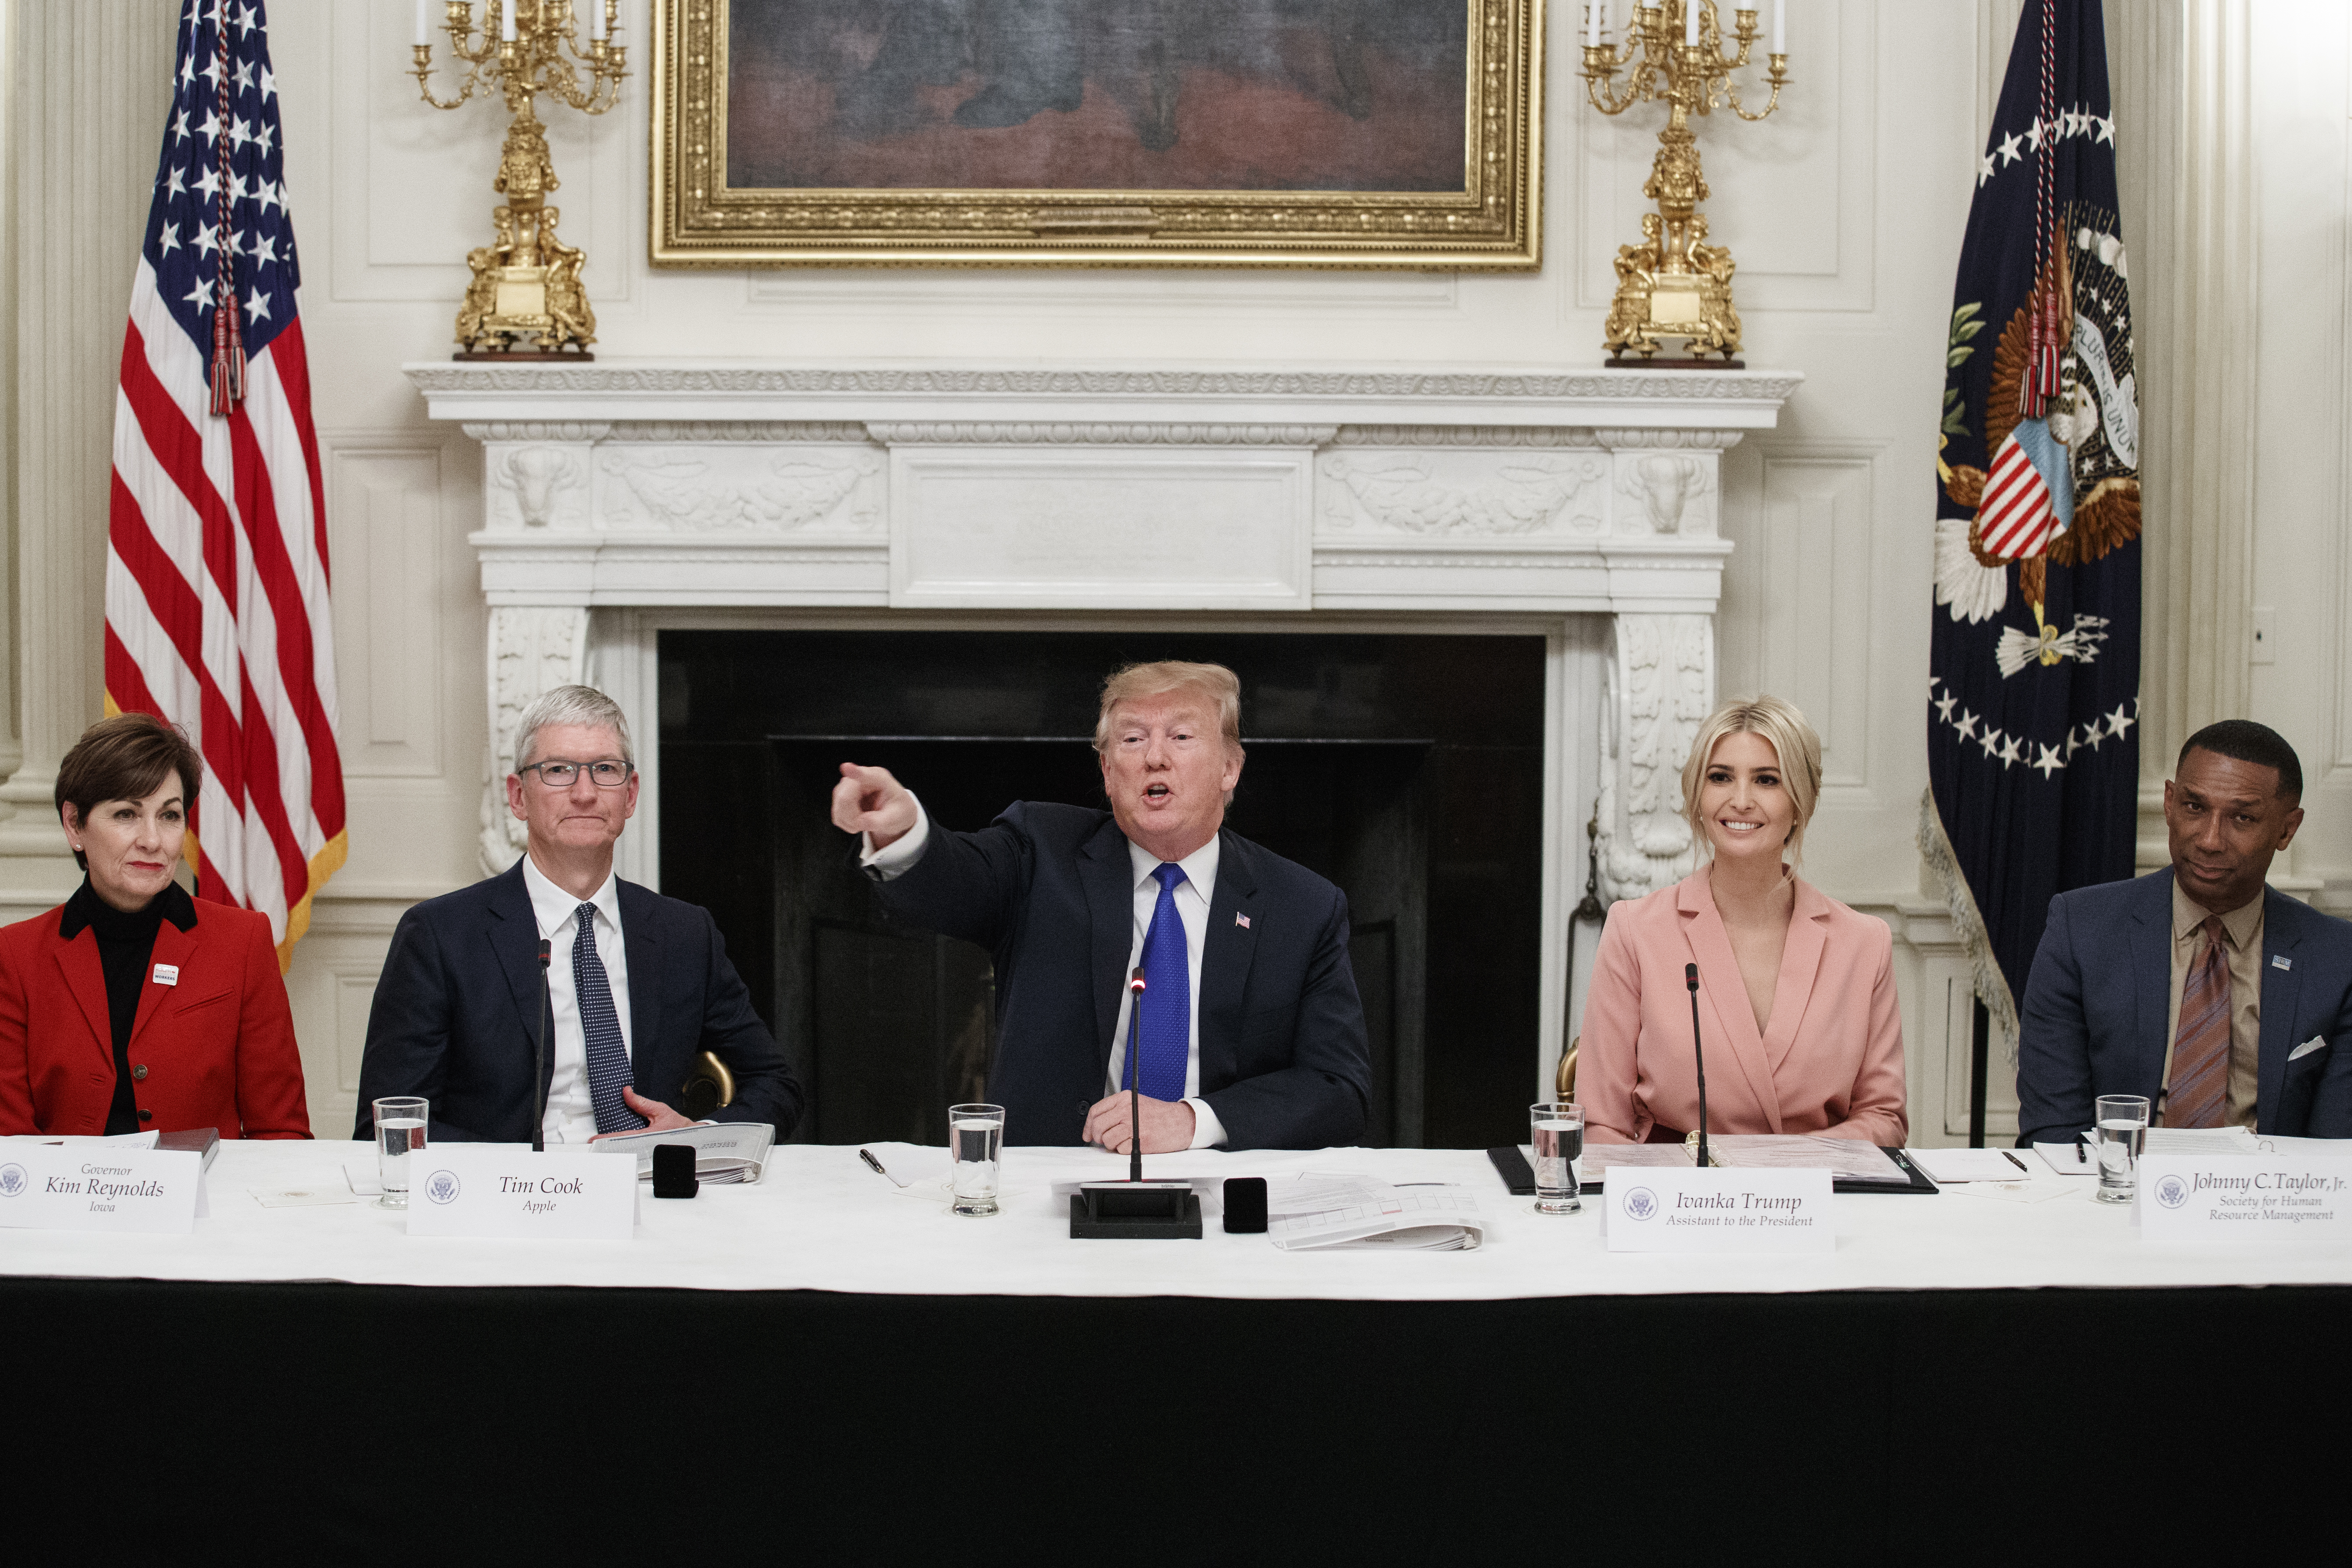 President Donald Trump delivers remarks beside Iowa Governor Kim Reynolds, far left, Apple CEO Tim Cook, left, Advisor Ivanka Trump, right, and Johnny C. Taylor, Jr., CEO of the Society for Human Resource Management, far right, during a meeting with the American Workforce Policy Advisory Board inside the State Dining Room of the White House on March 6, 2019 in Washington, DC. (Photo by Tom Brenner/Getty Images)